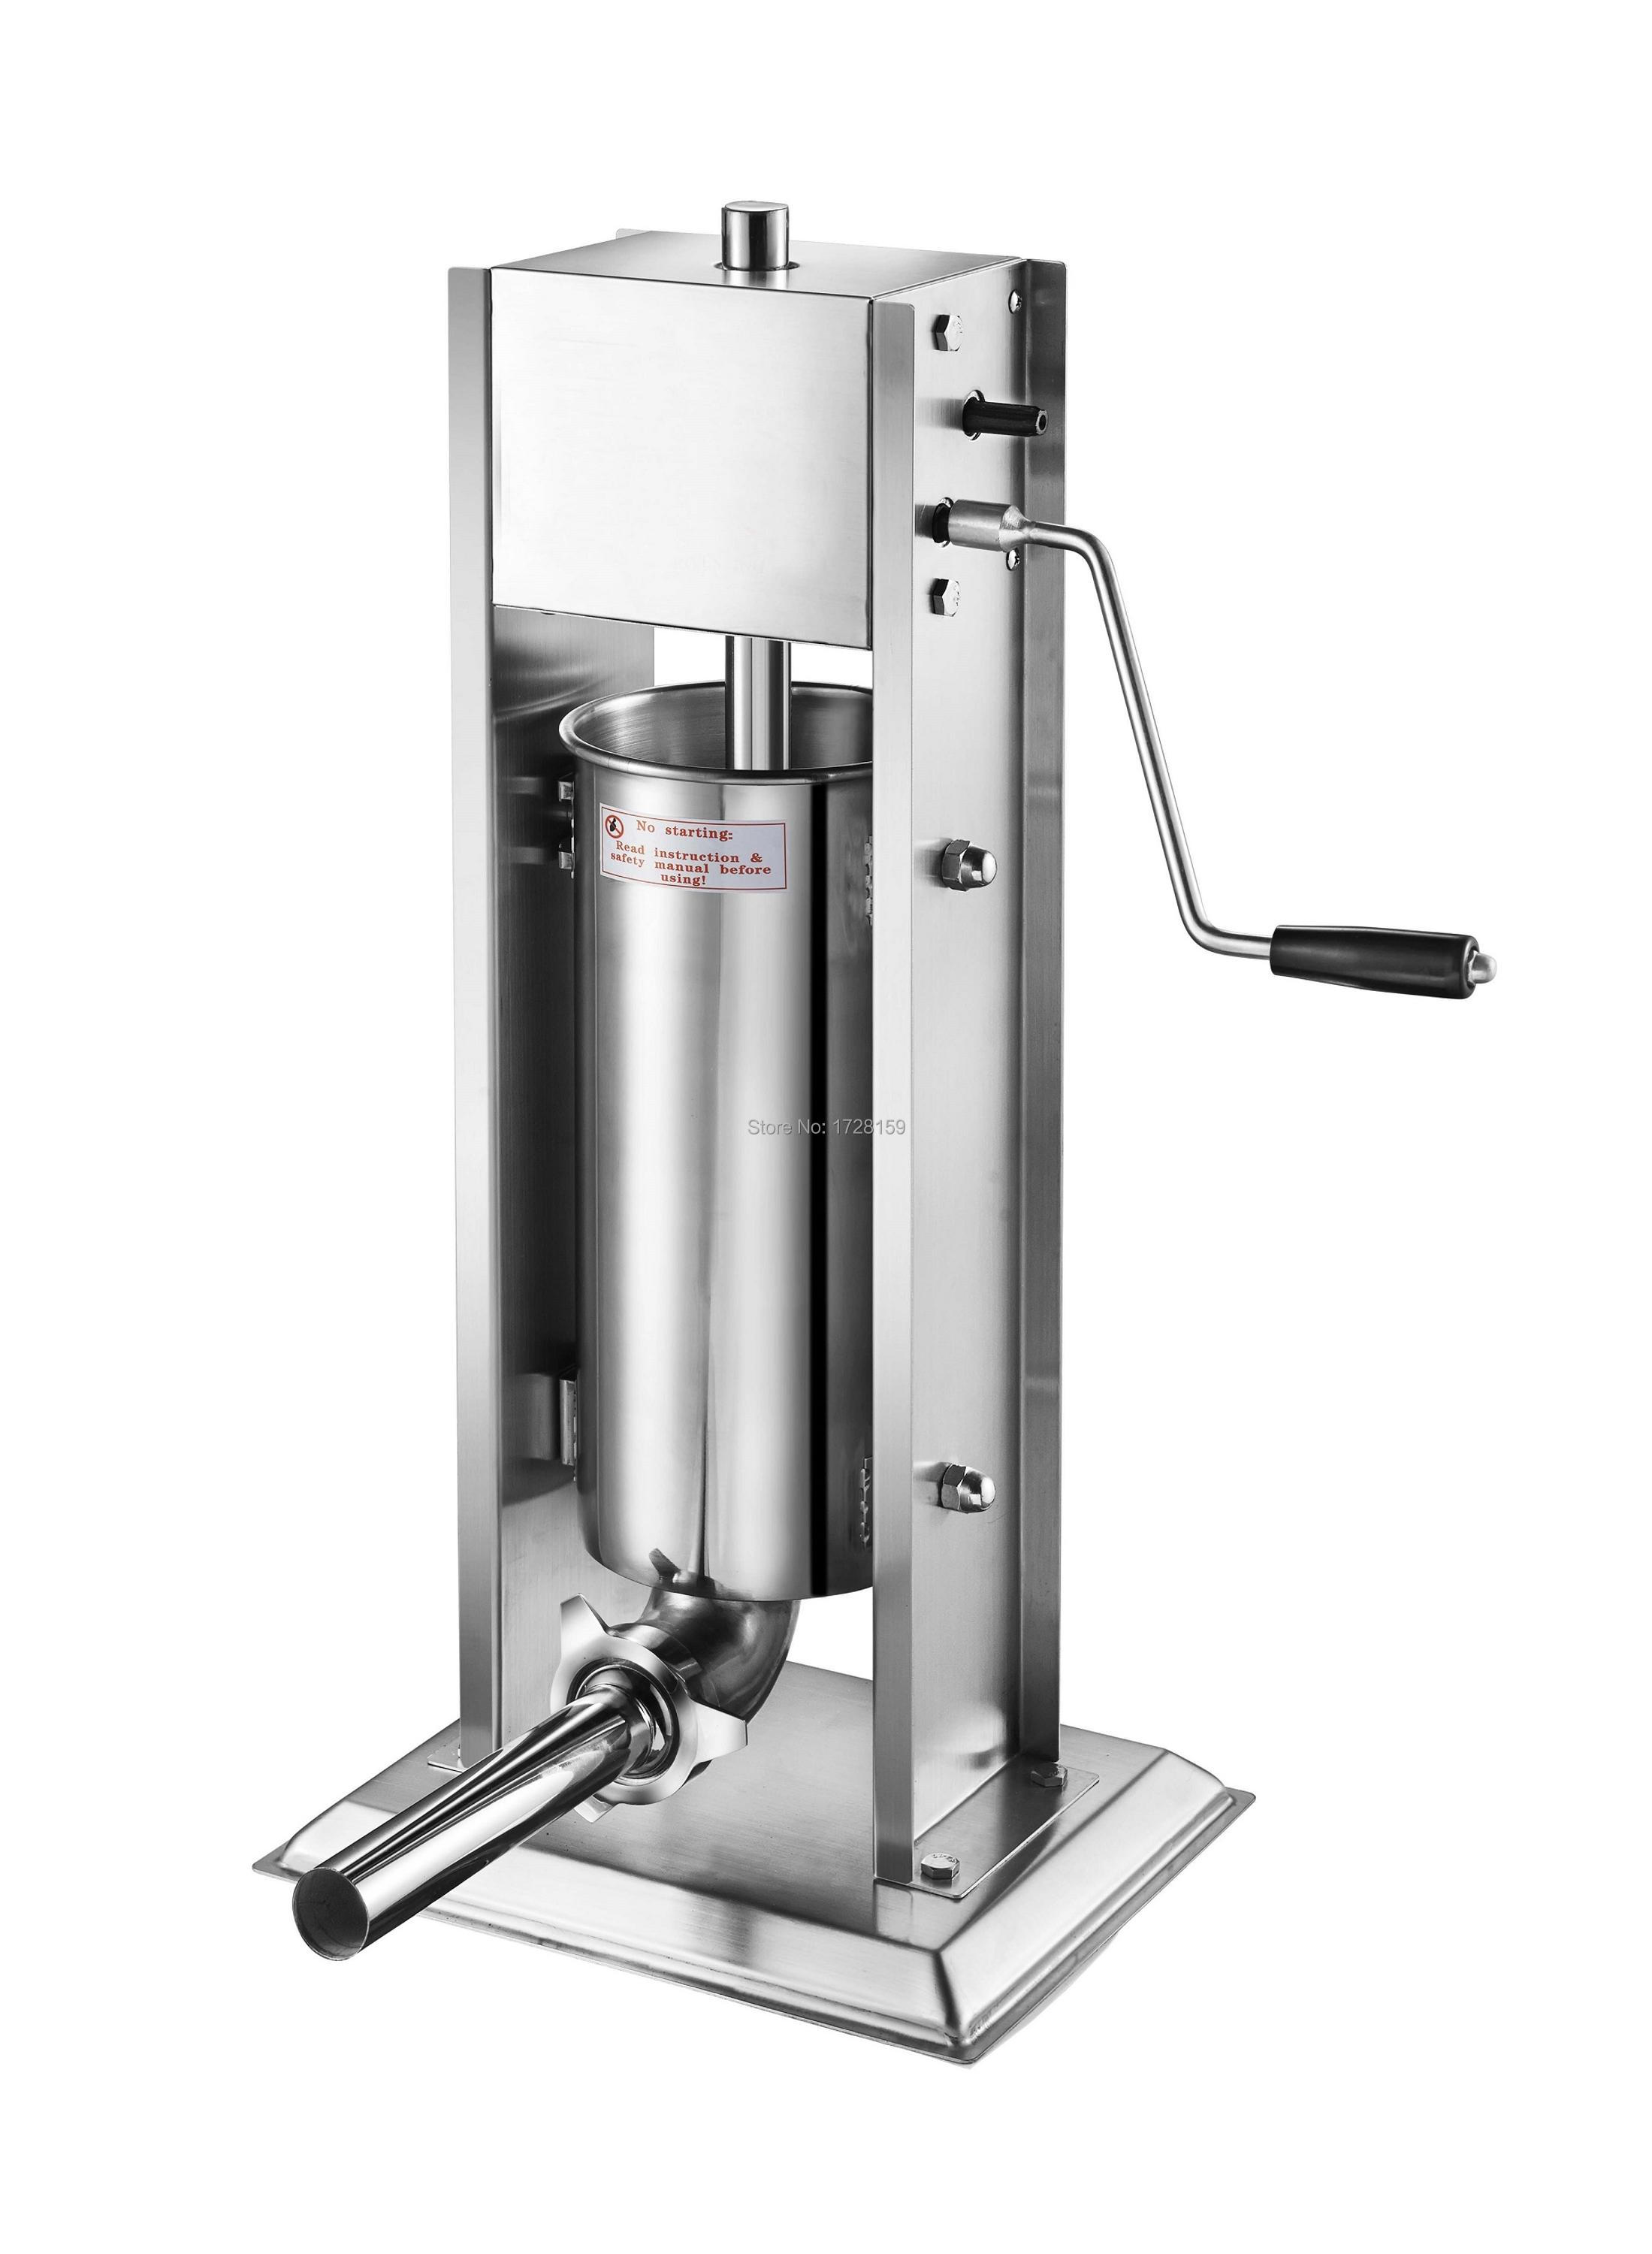 3L/7lb stainless steel  manual sausage meat stuffer, vertical sausage filling machine meat processor sausage stuffer food processor 3l big sausage maker manual sausage stuffer machine fast delivery making filling vertical sausage filler